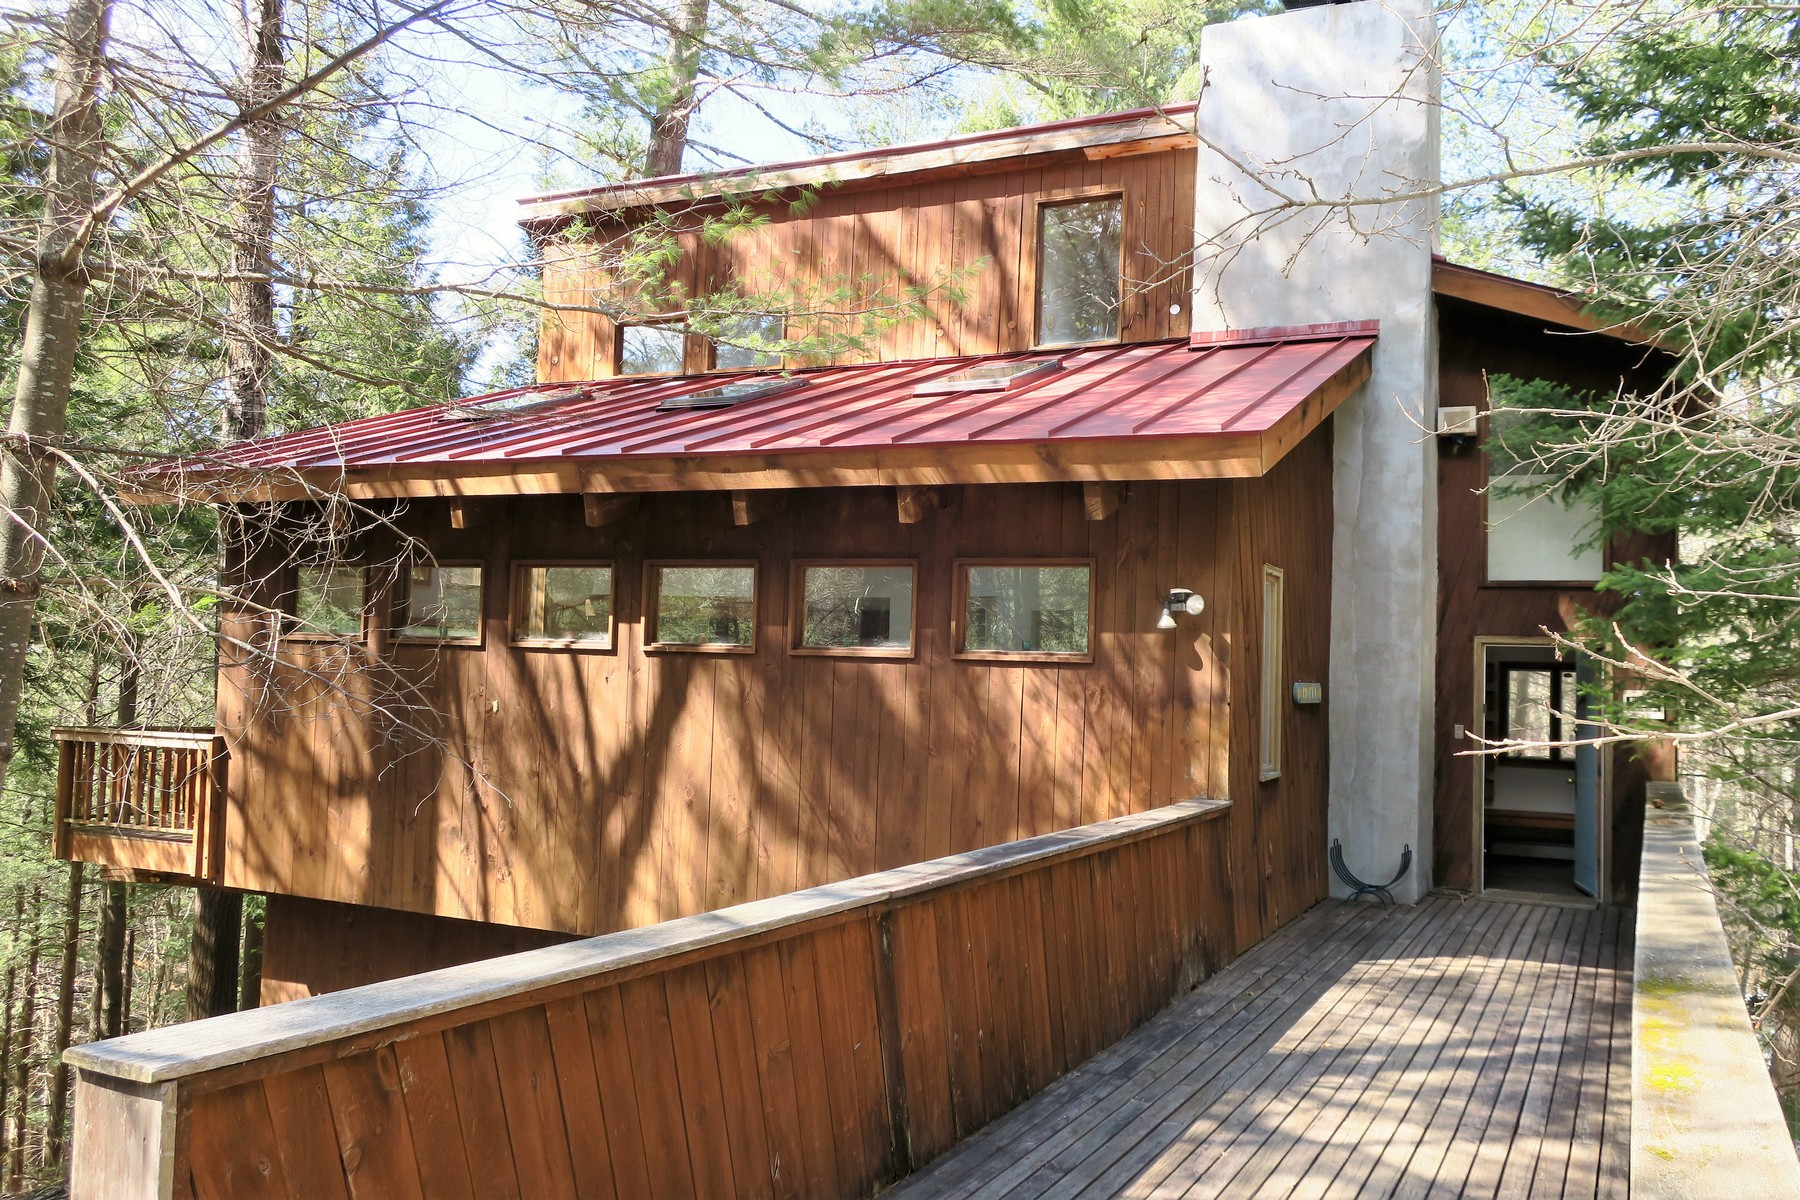 Single Family Home for Sale at 65 Ash Lane, Jamaica 65 Ash Ln Jamaica, Vermont 05343 United States